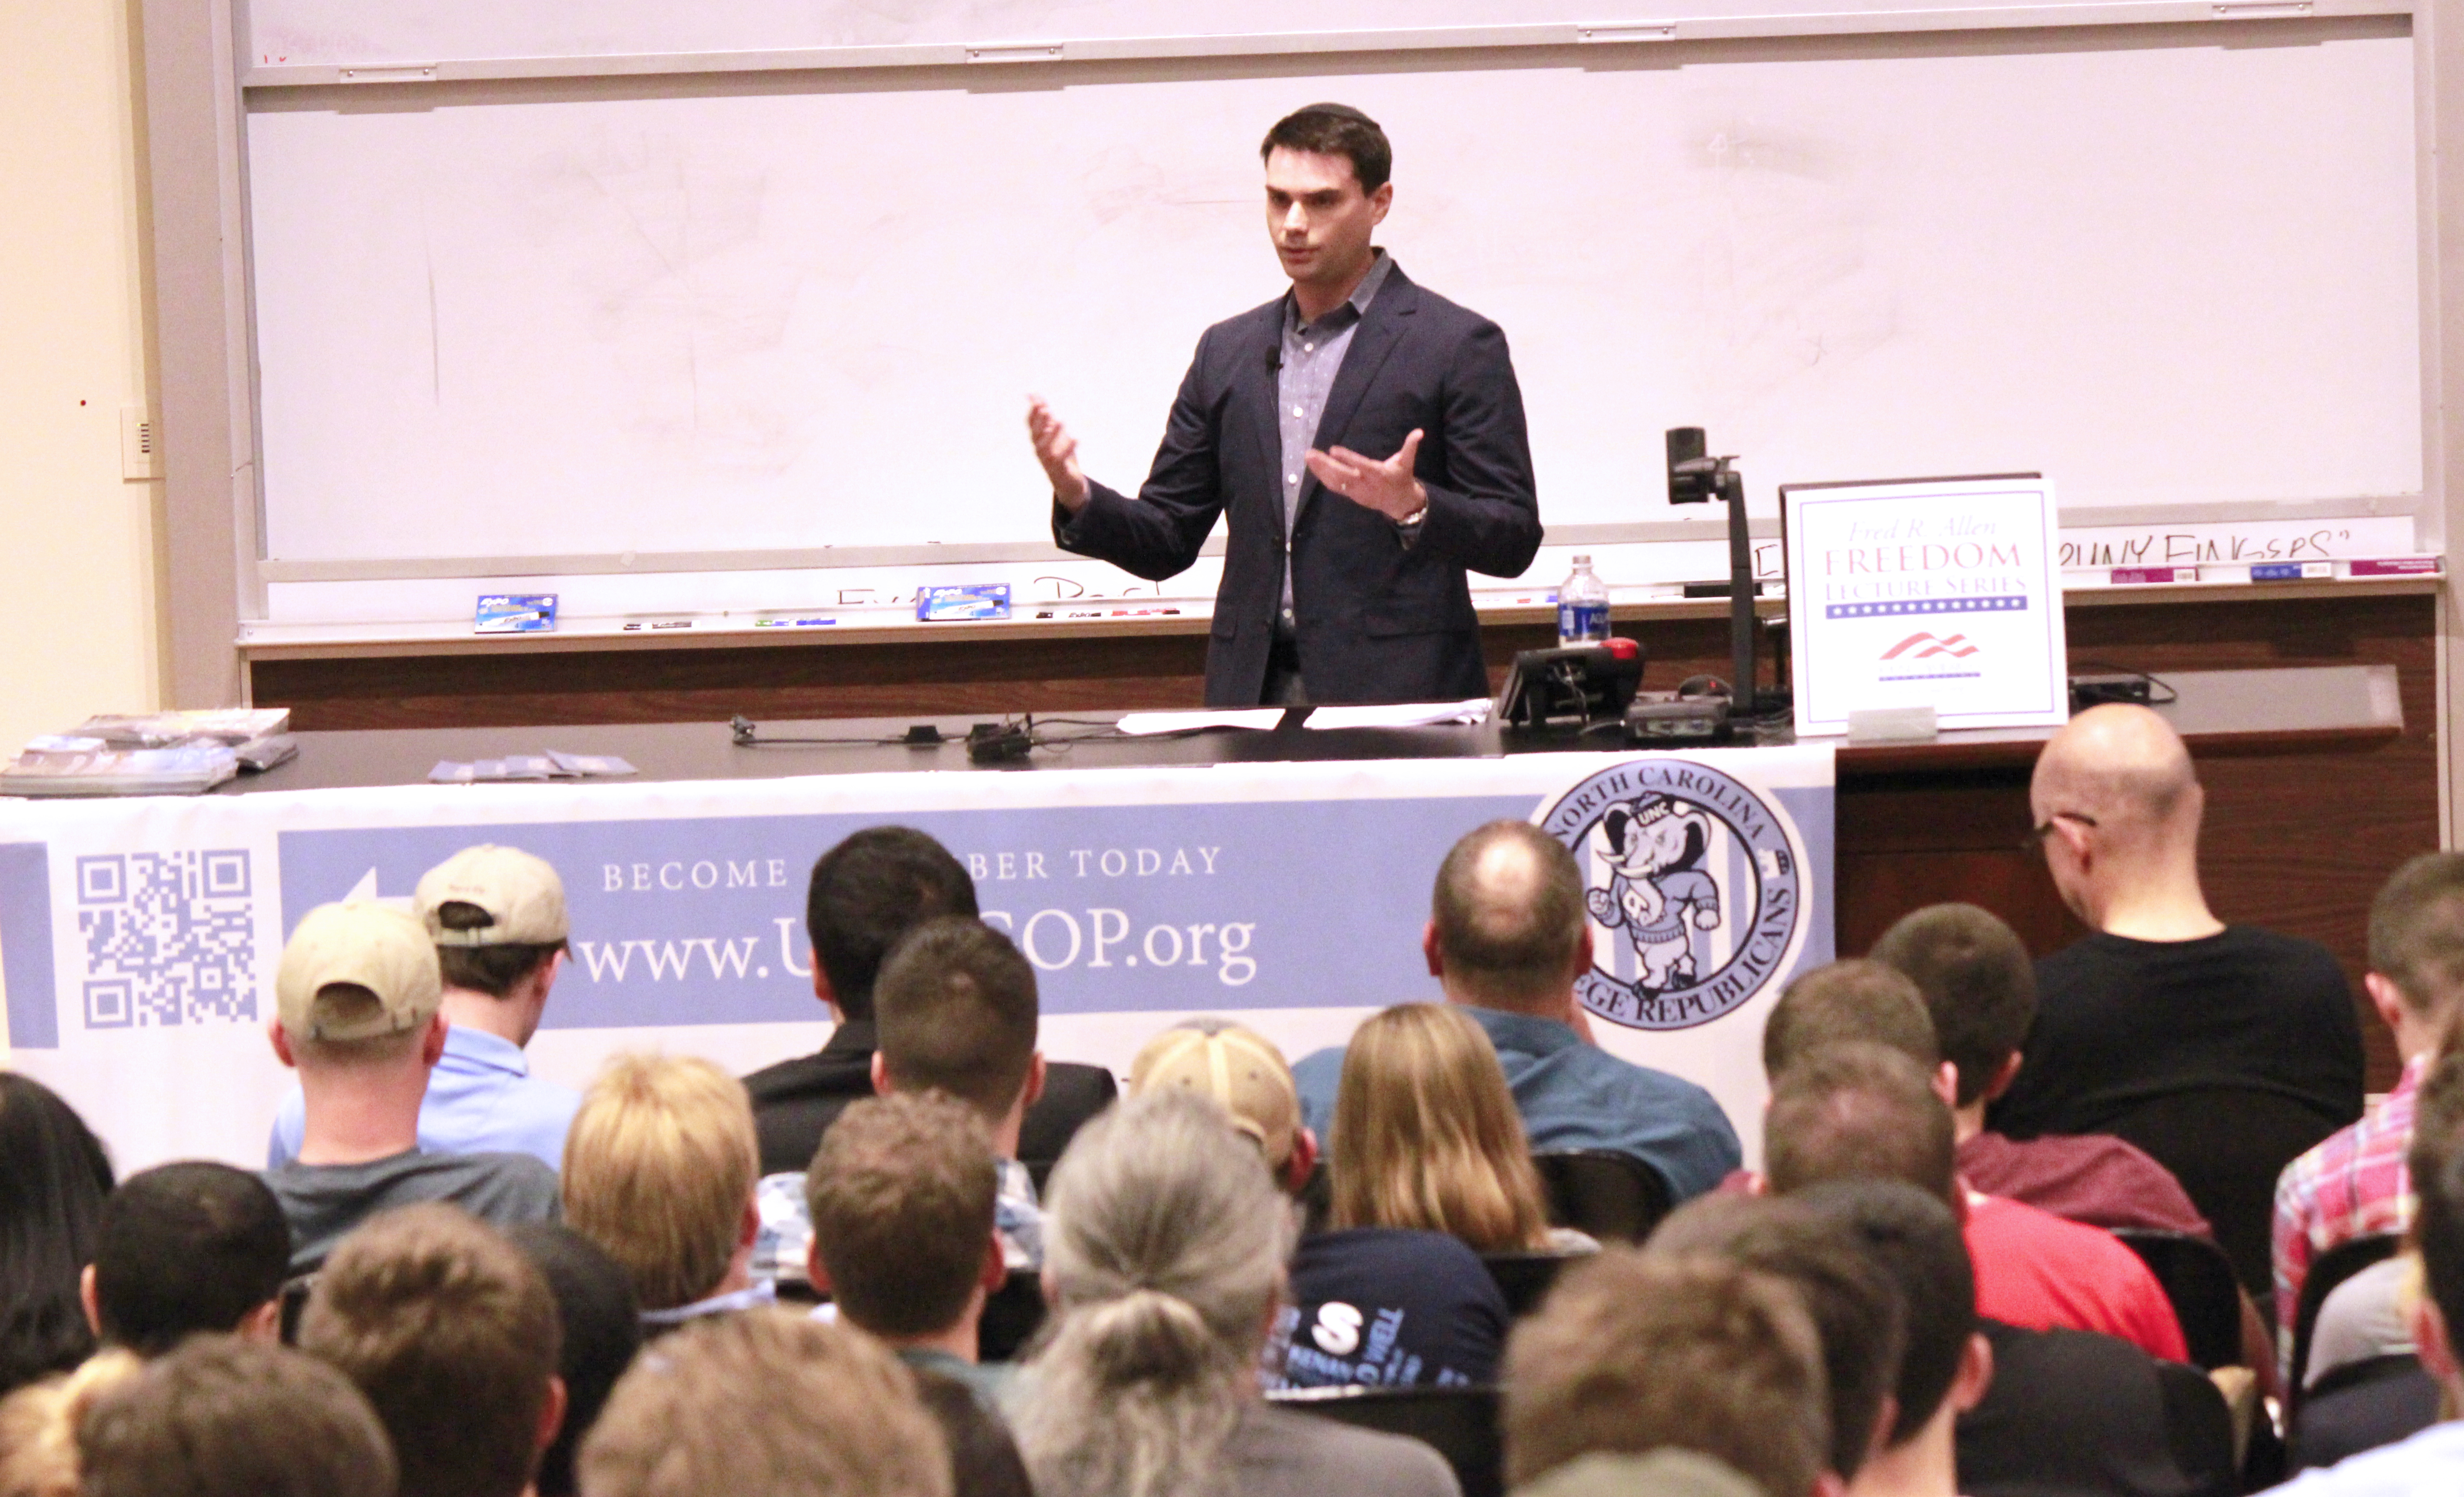 Political commentator and author Ben Shapiro addresses a group of students at UNC Chapel Hill on March 30, 2016. (Photo by Kari Travis)